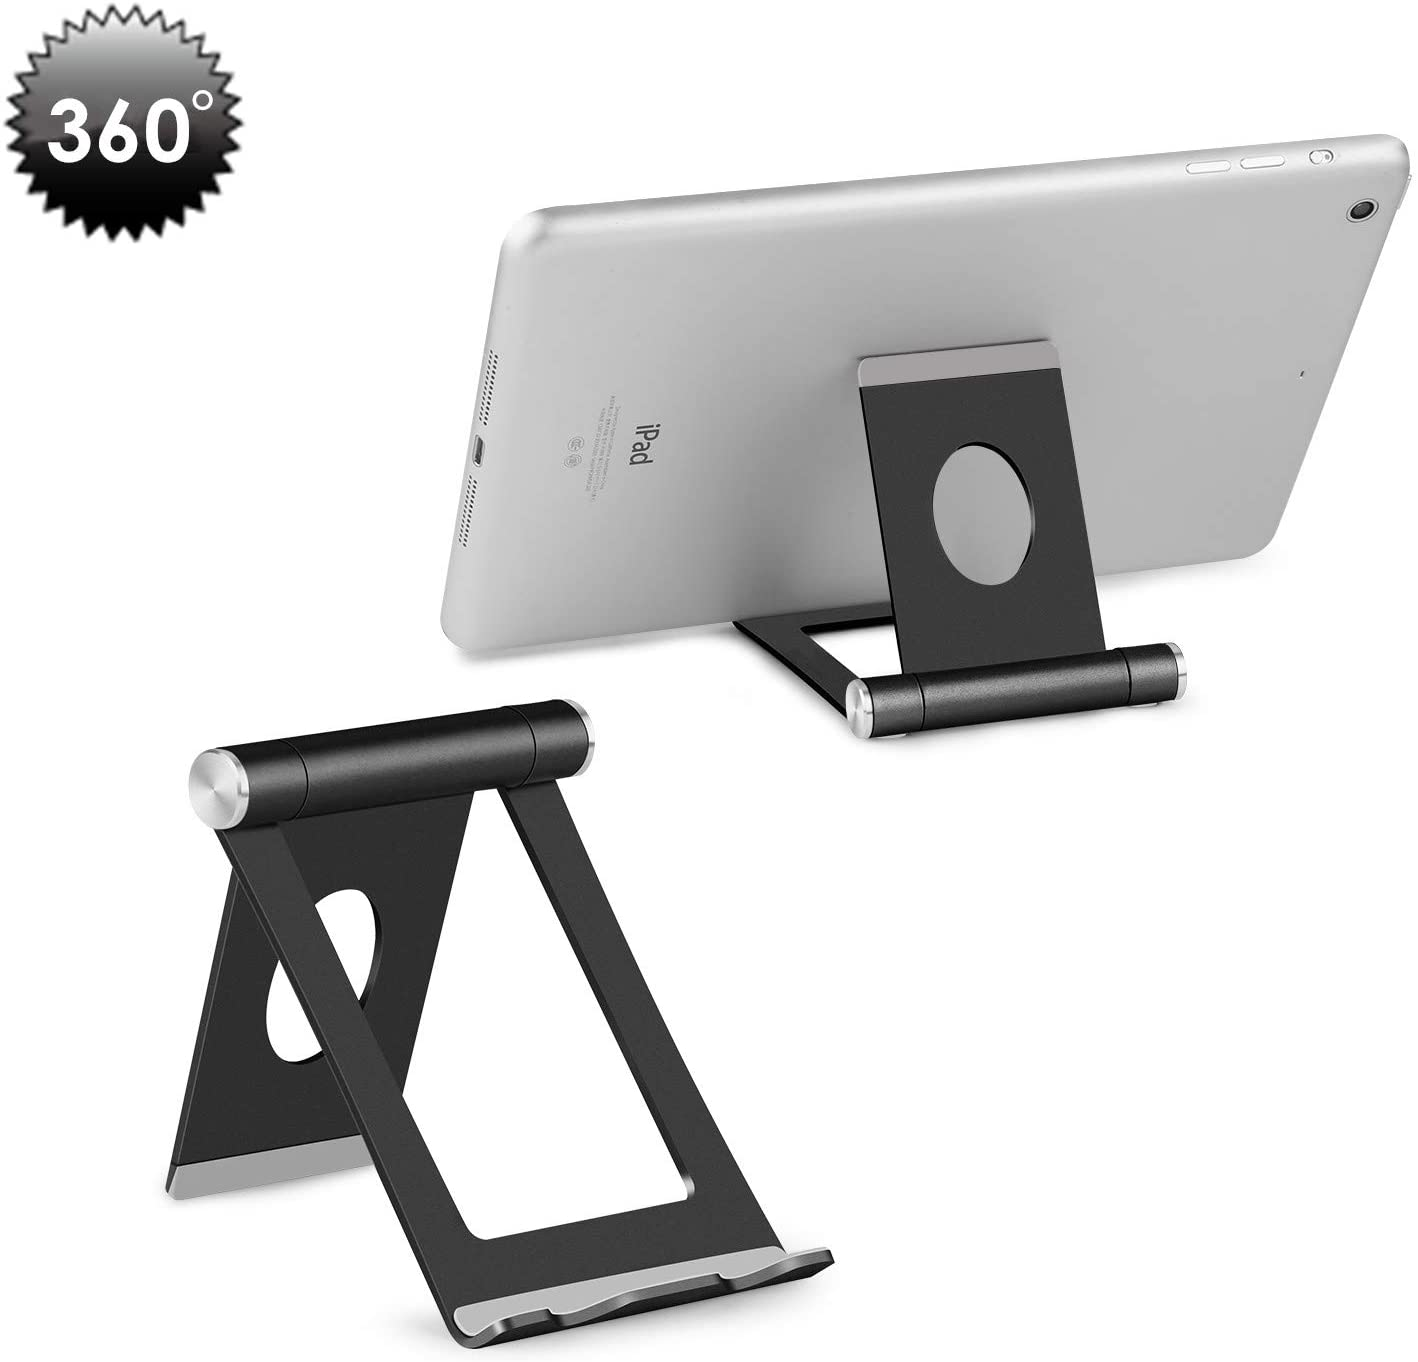 Cell Phone Stand, YOSHINE Portable Phone Stand: Full 360° Adjustable Cell Phone Holder Cradle Dock for Phone Xs XR X 8 7 6 6S Plus, Universal Aluminium Stand for Cellphones & Tablets (4-10.1